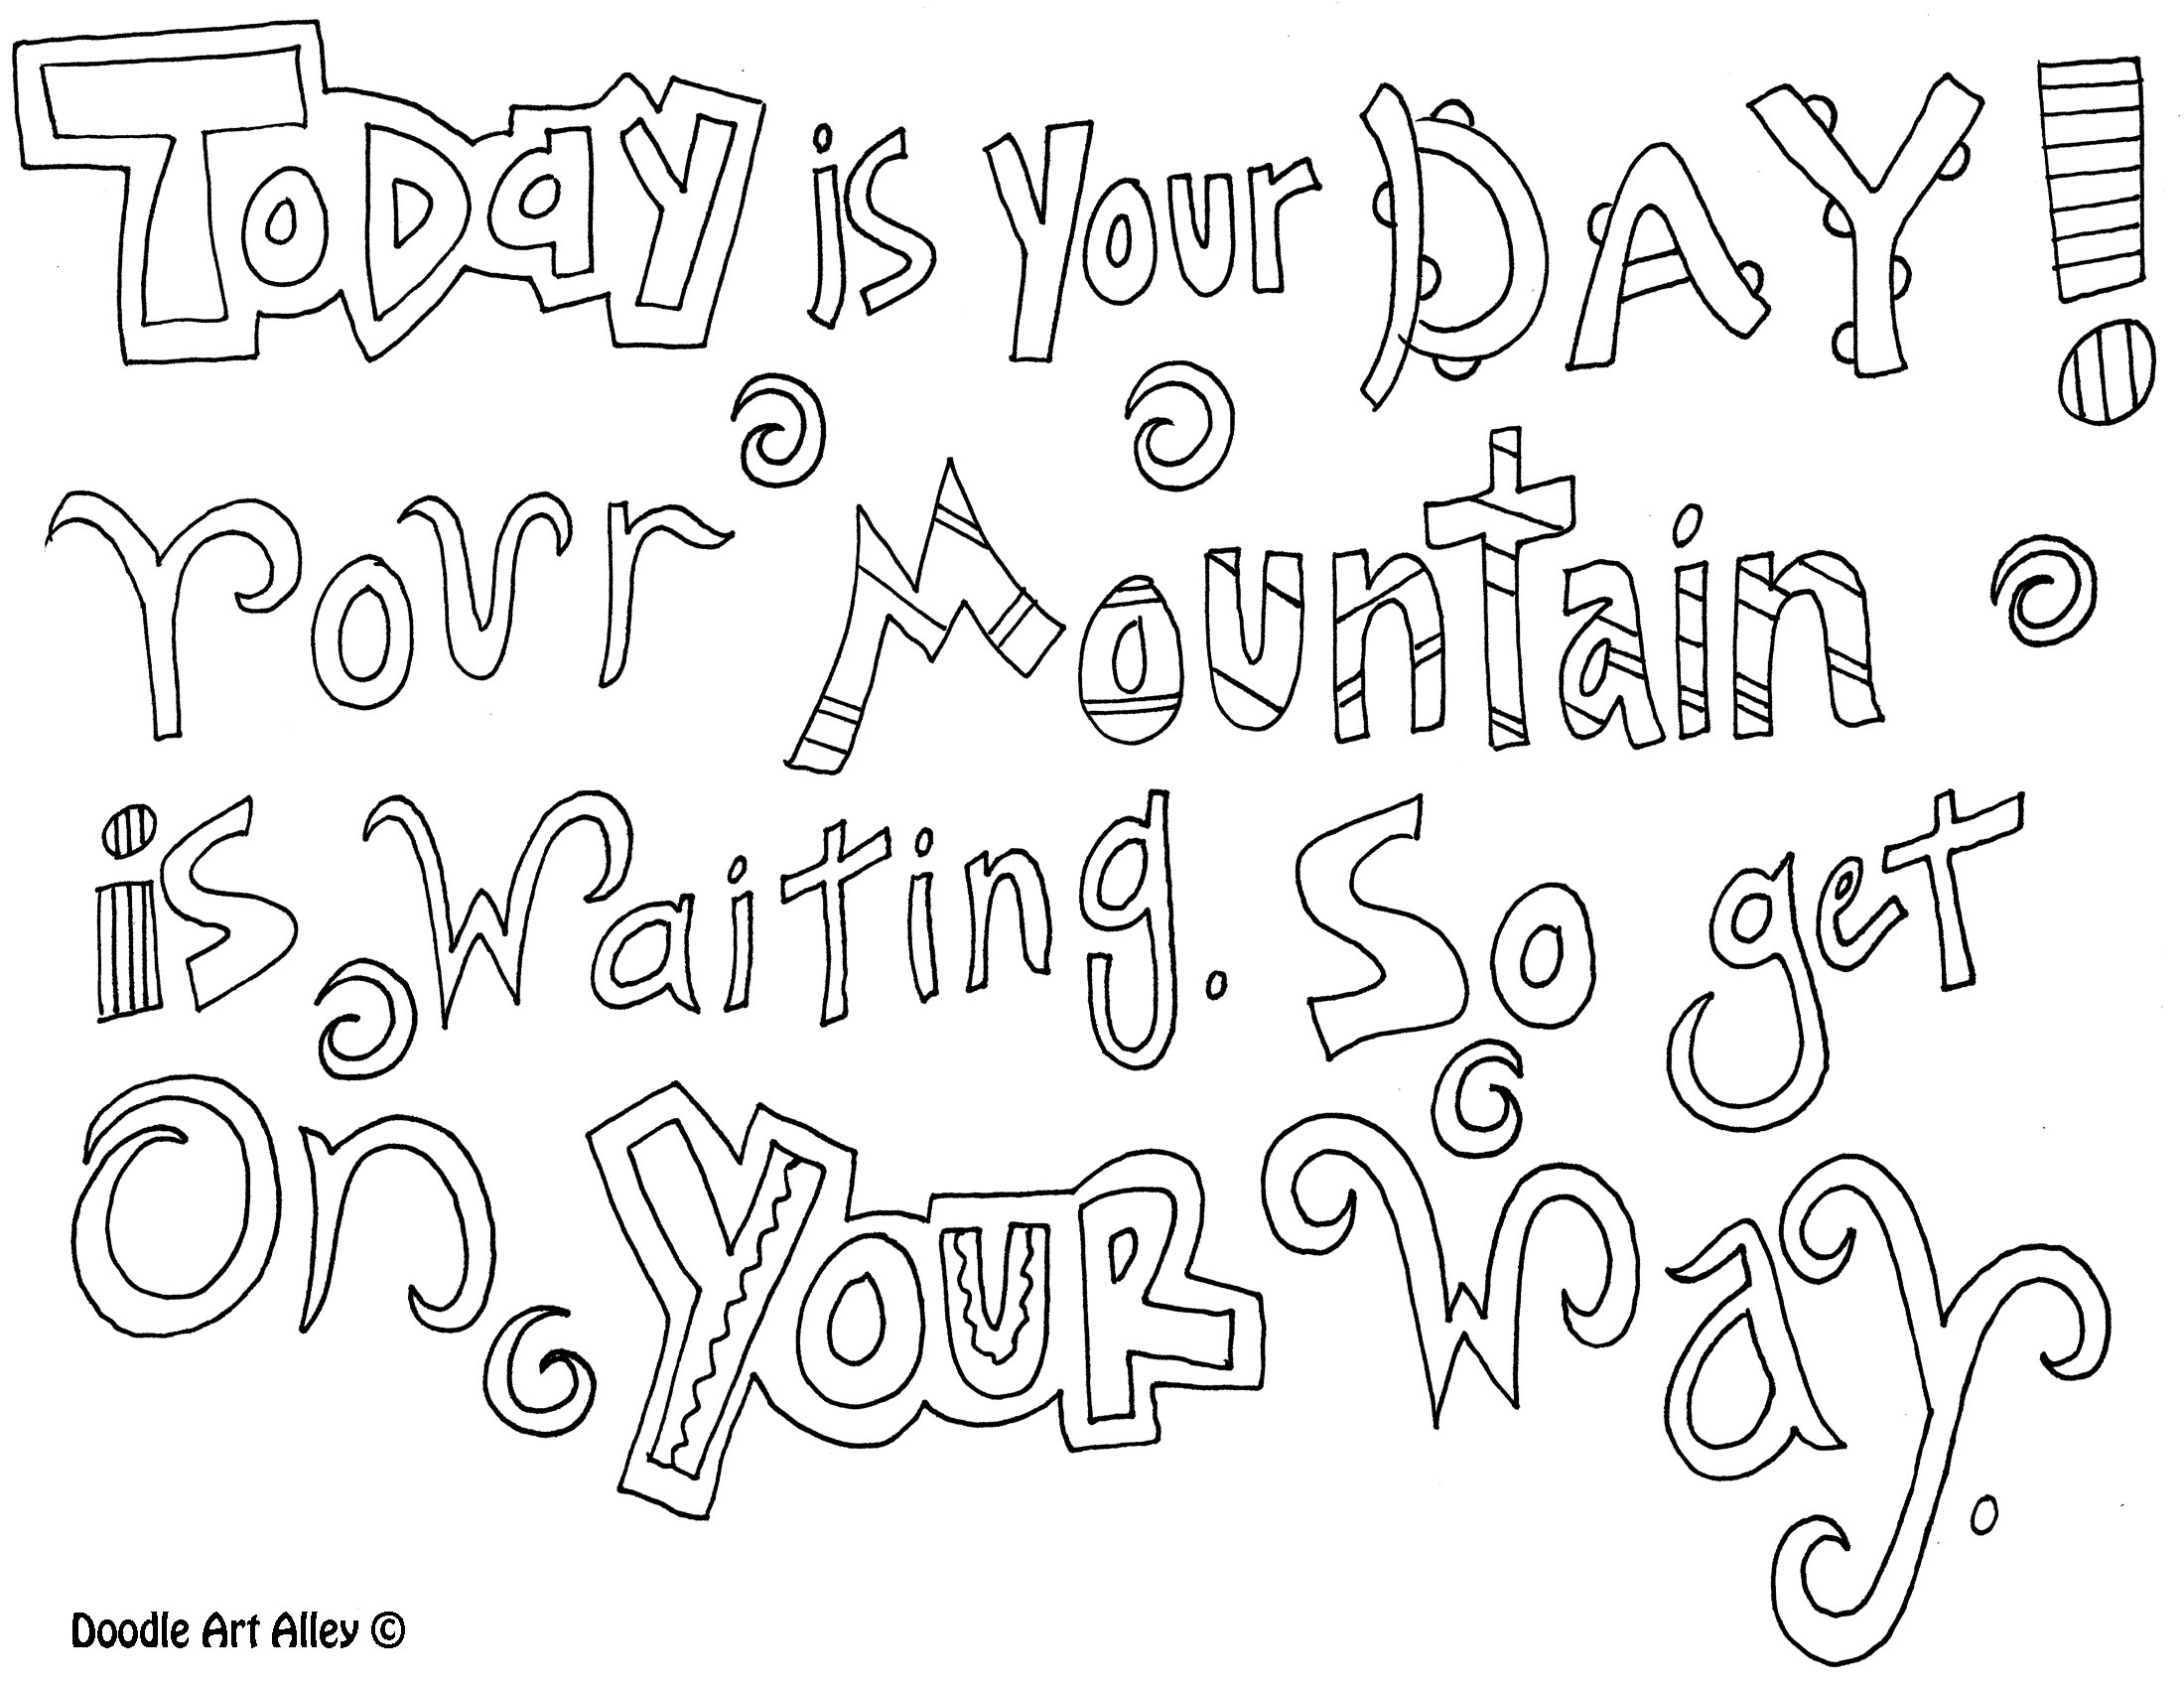 Dr Seuss Coloring Page Printable at GetDrawings.com | Free ...